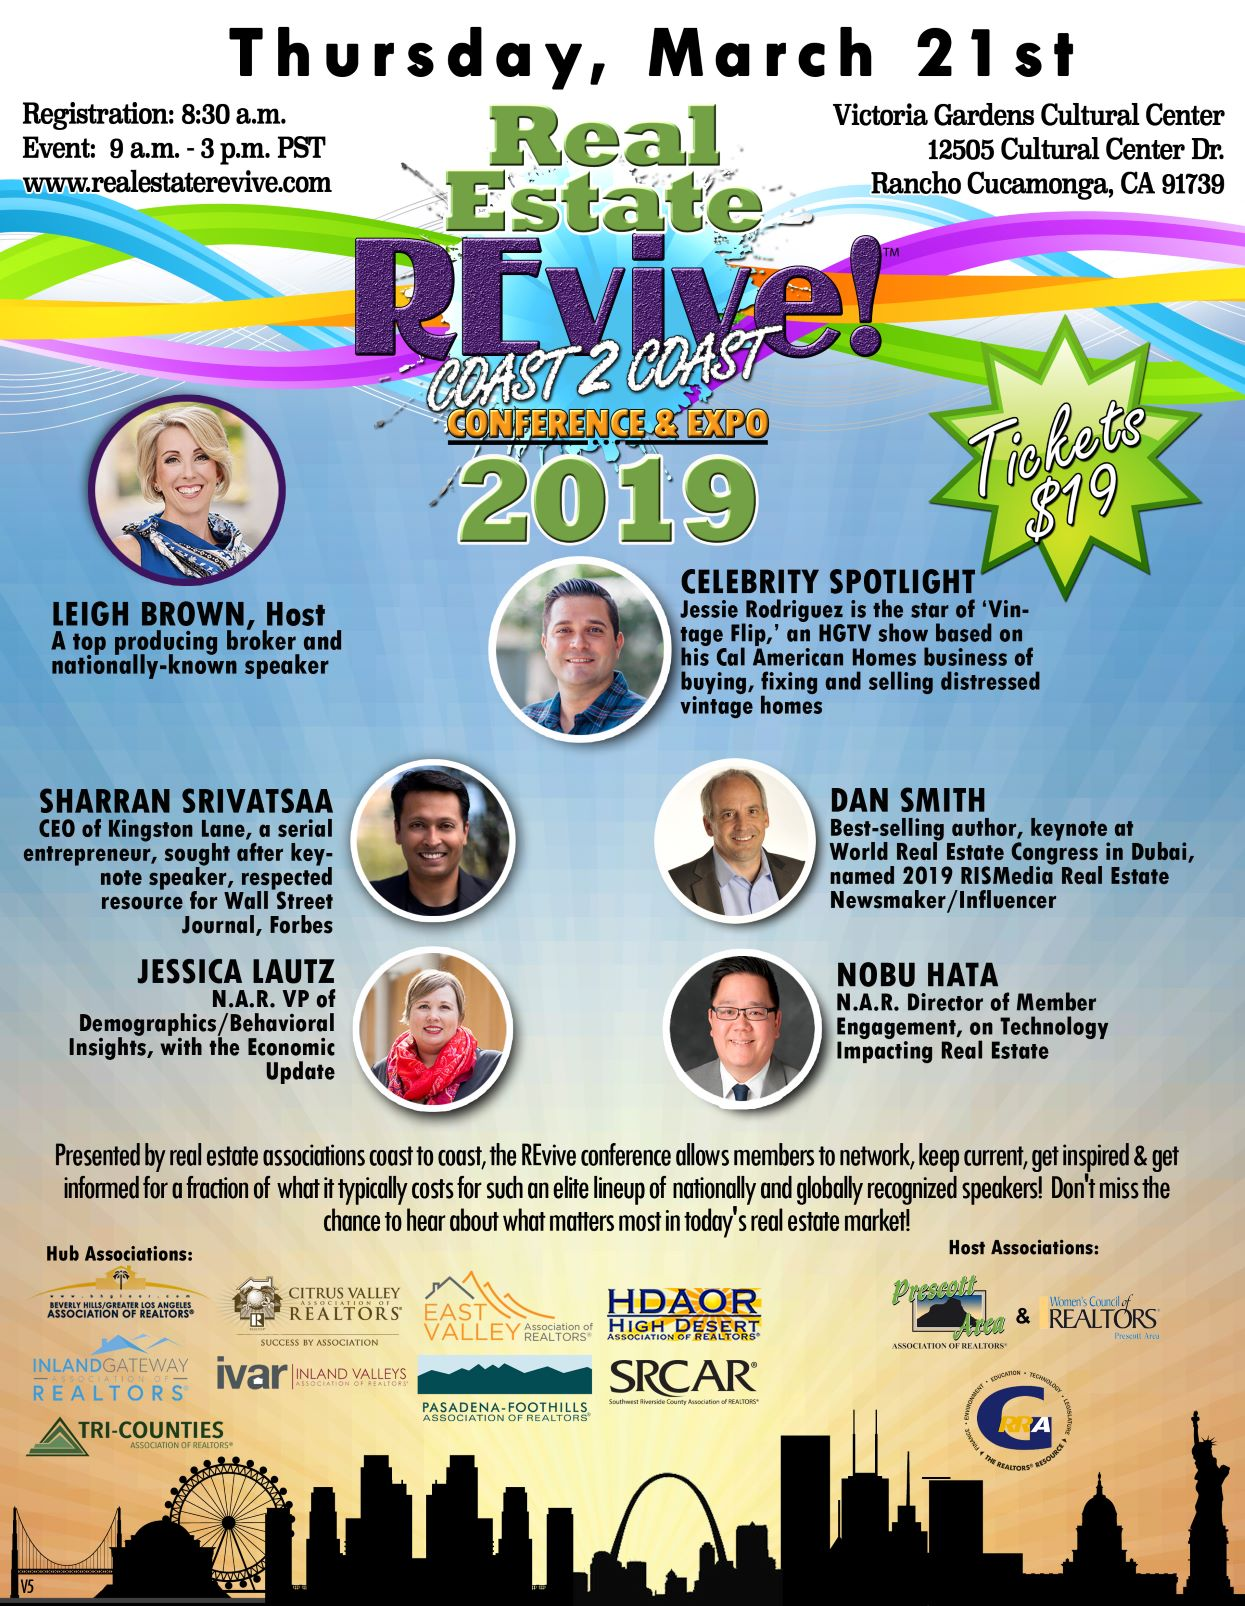 2019 REviveFlyer1_Final v5 small